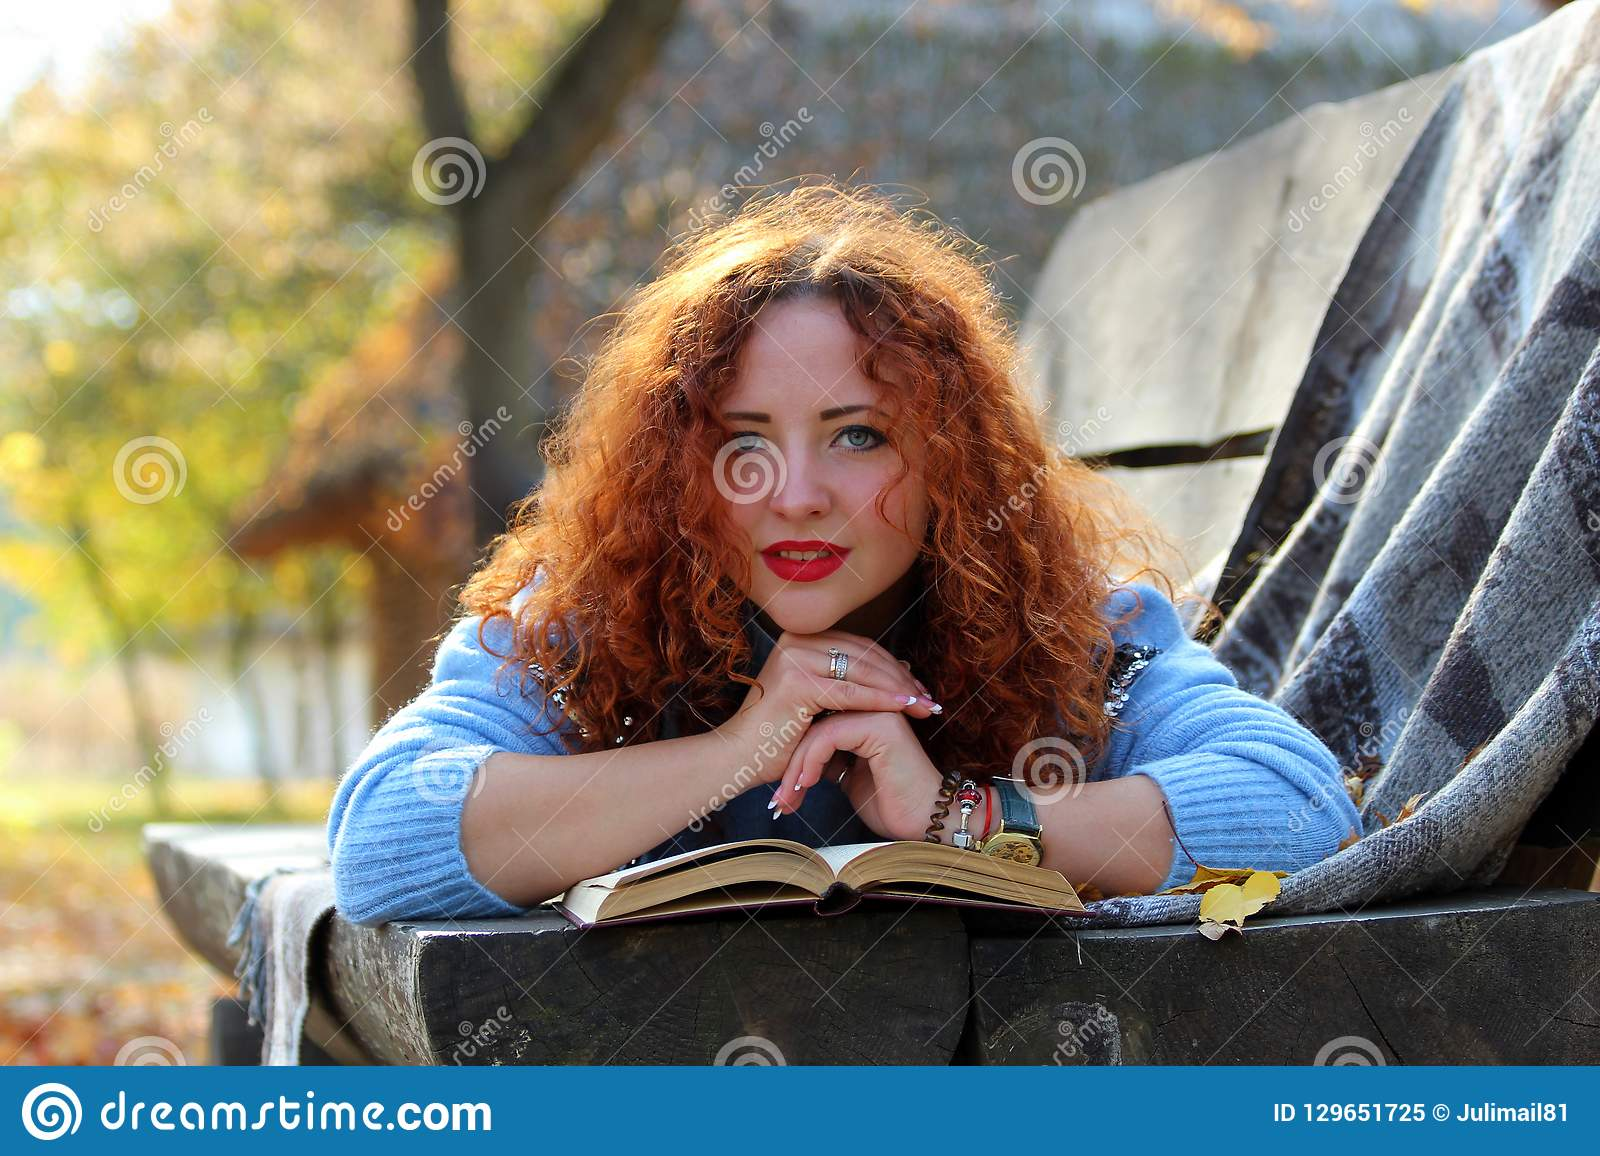 Beautiful woman with red hair is lying on a bench with a book and yellow leaves and looking into the camera. Autumn park backgroun